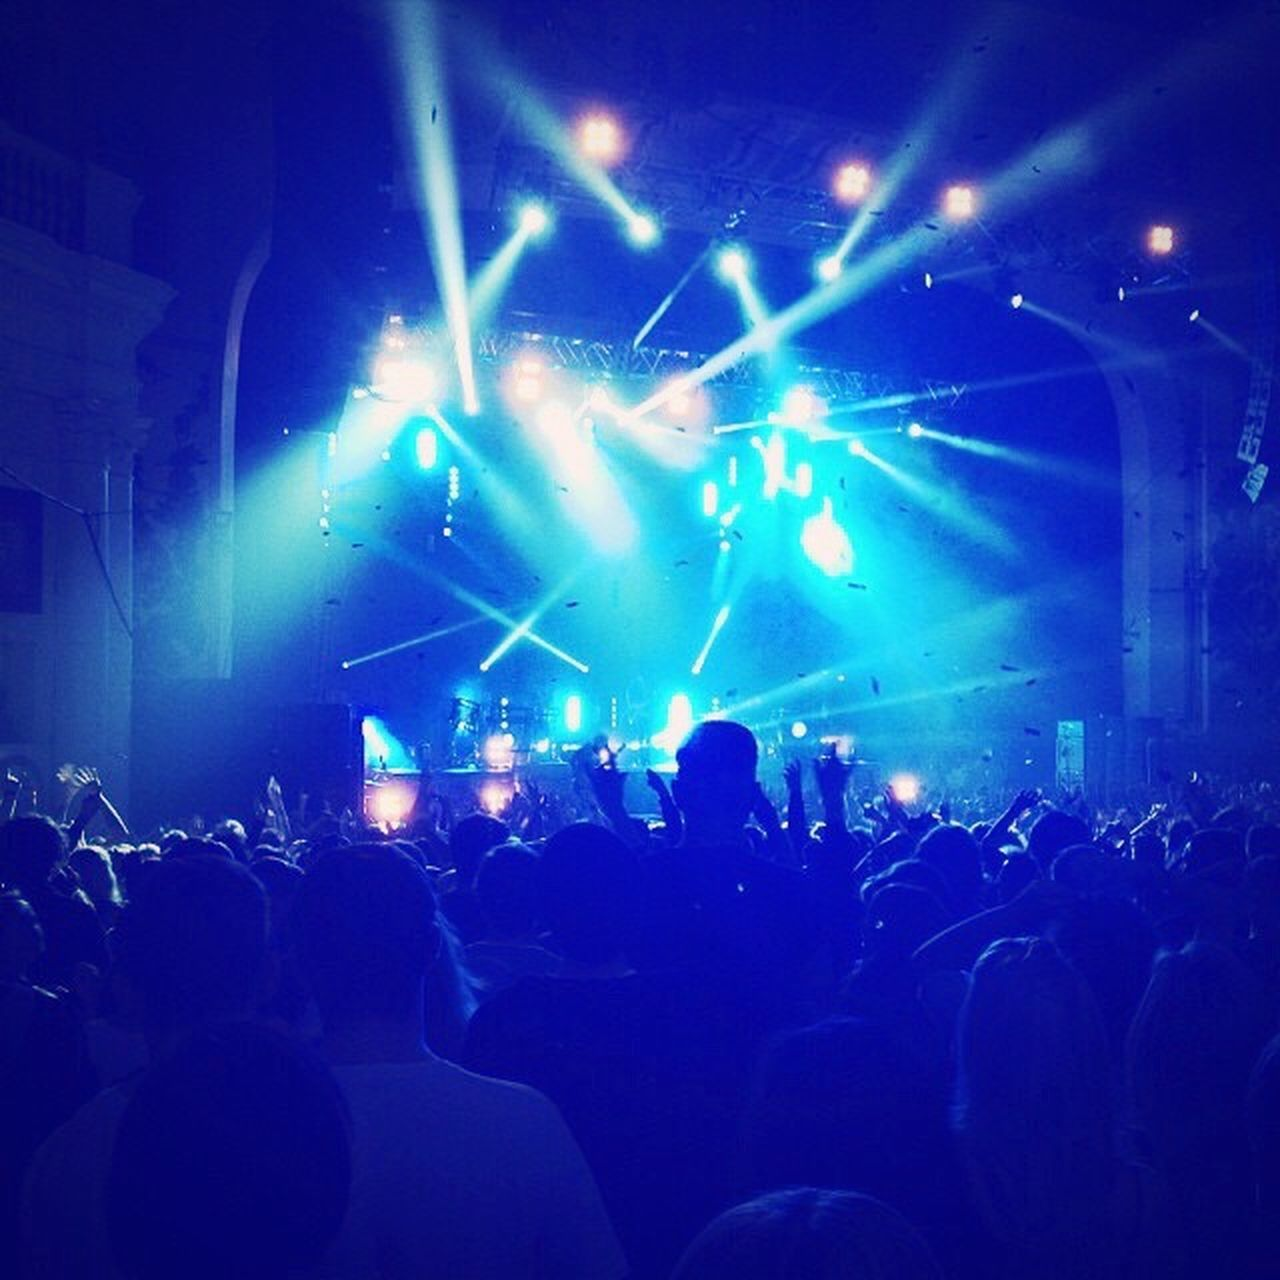 Music Brings Us Together Event Enjoyment Large Group Of People Music Arts Culture And Entertainment Crowd Illuminated Nightlife Fun Lifestyles Youth Culture Performance Stage - Performance Space Togetherness Concert Stage Light Indoors  Light - Natural Phenomenon